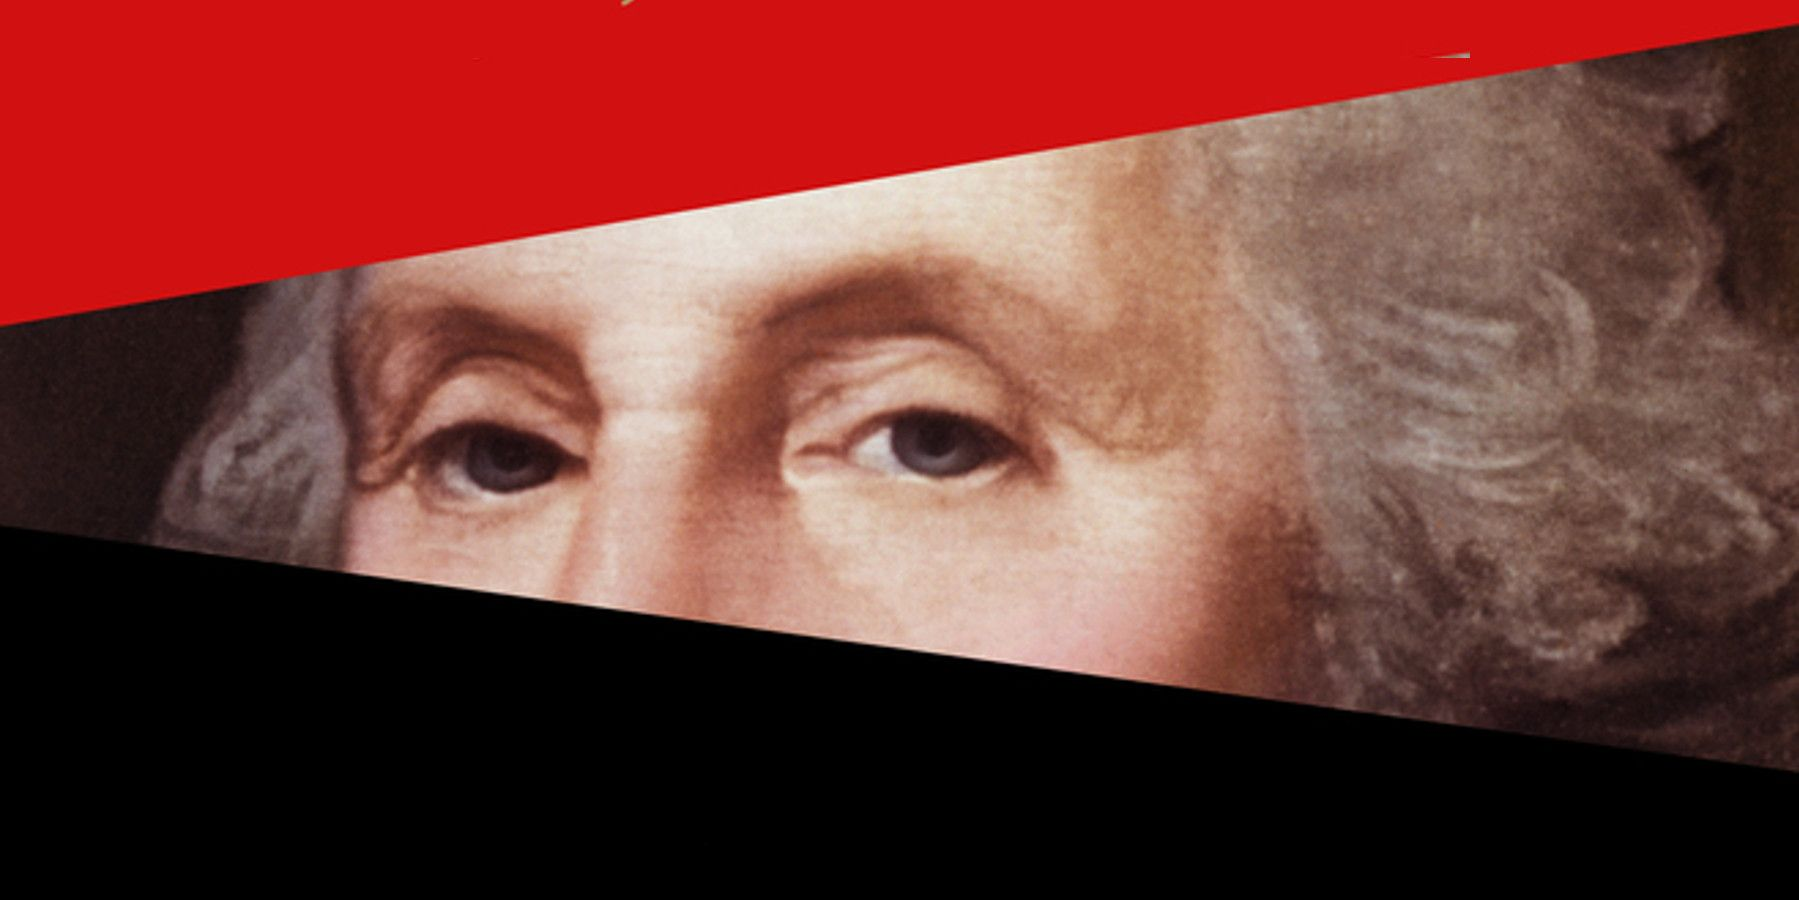 INTERVIEW: Brad Meltzer Uncovers The Plot to Kill Washington In The First Conspiracy